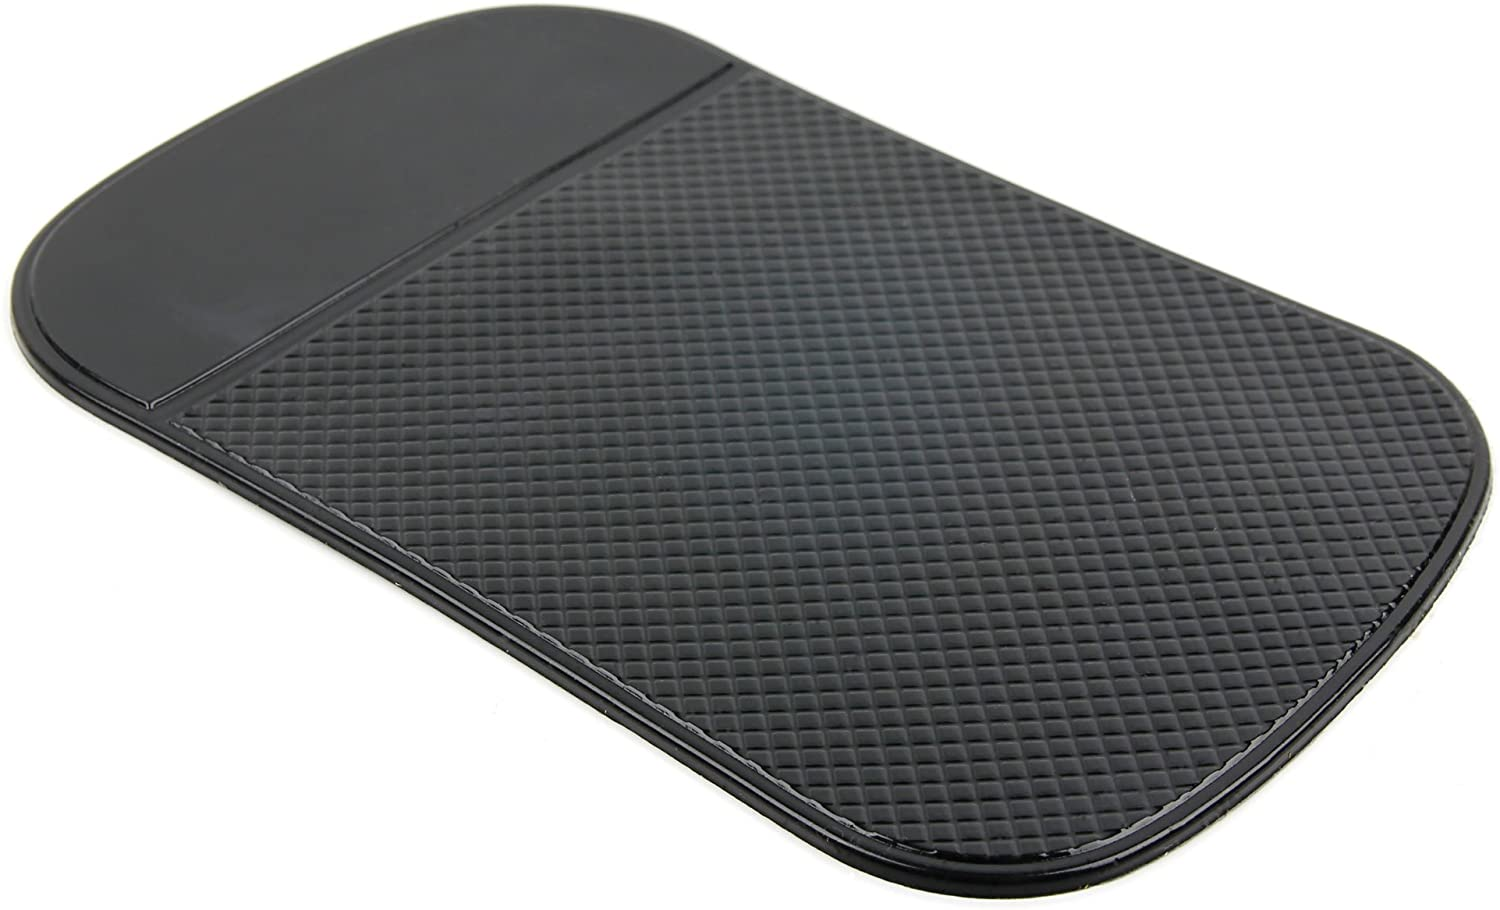 DURAGADGET High-Grade Rubber Anti-Slip Car Dashboard Pad/Mat - Compatible with Cell Phones Including Emporia Solid, Emporia Solid Plus, ITTM Zero Limits, Nokia 3720 Classic & Simvalley XT-710 V.2